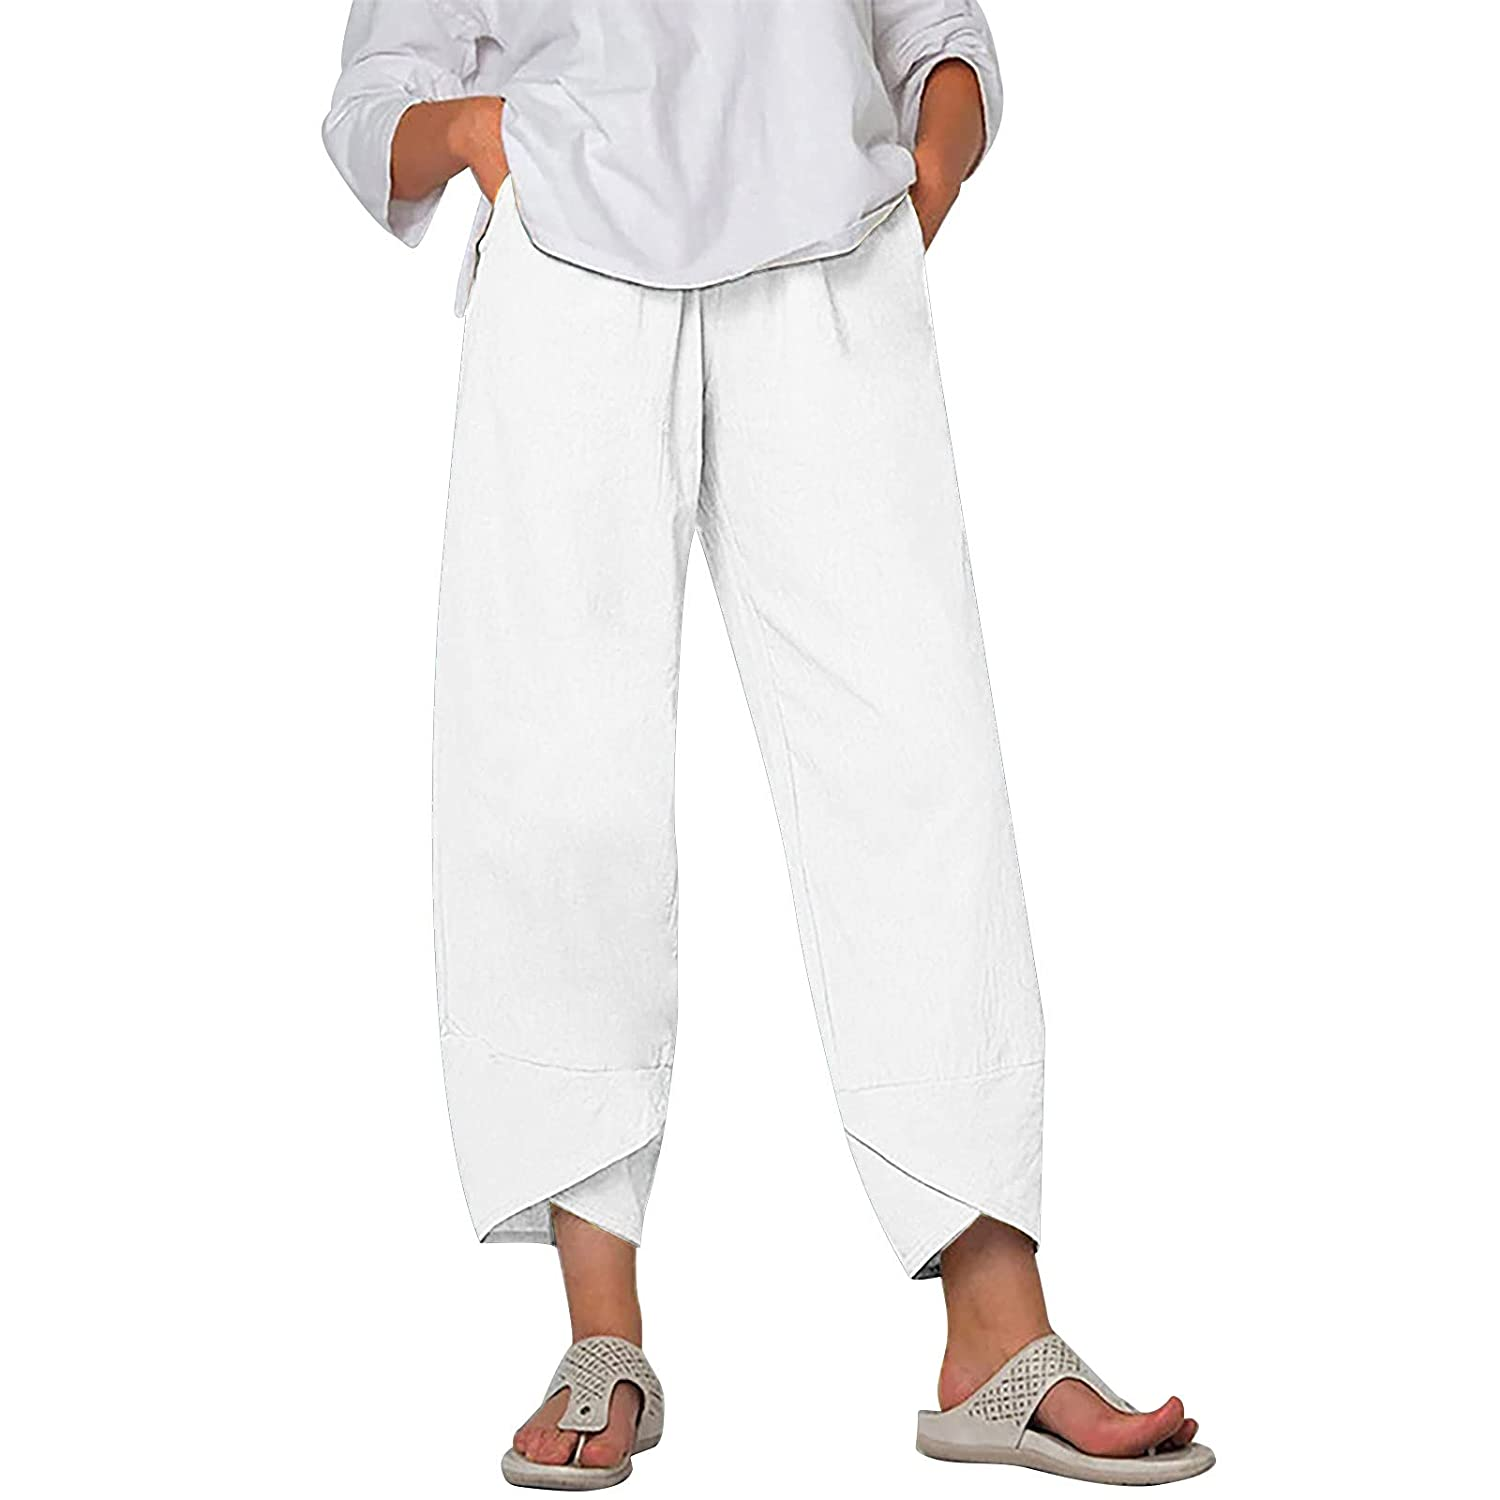 Padaleks Cotton Linen Pants for Women Wide Leg Baggy Tapered Cropped Trousers Summer Lounge Bottoms with Pocket